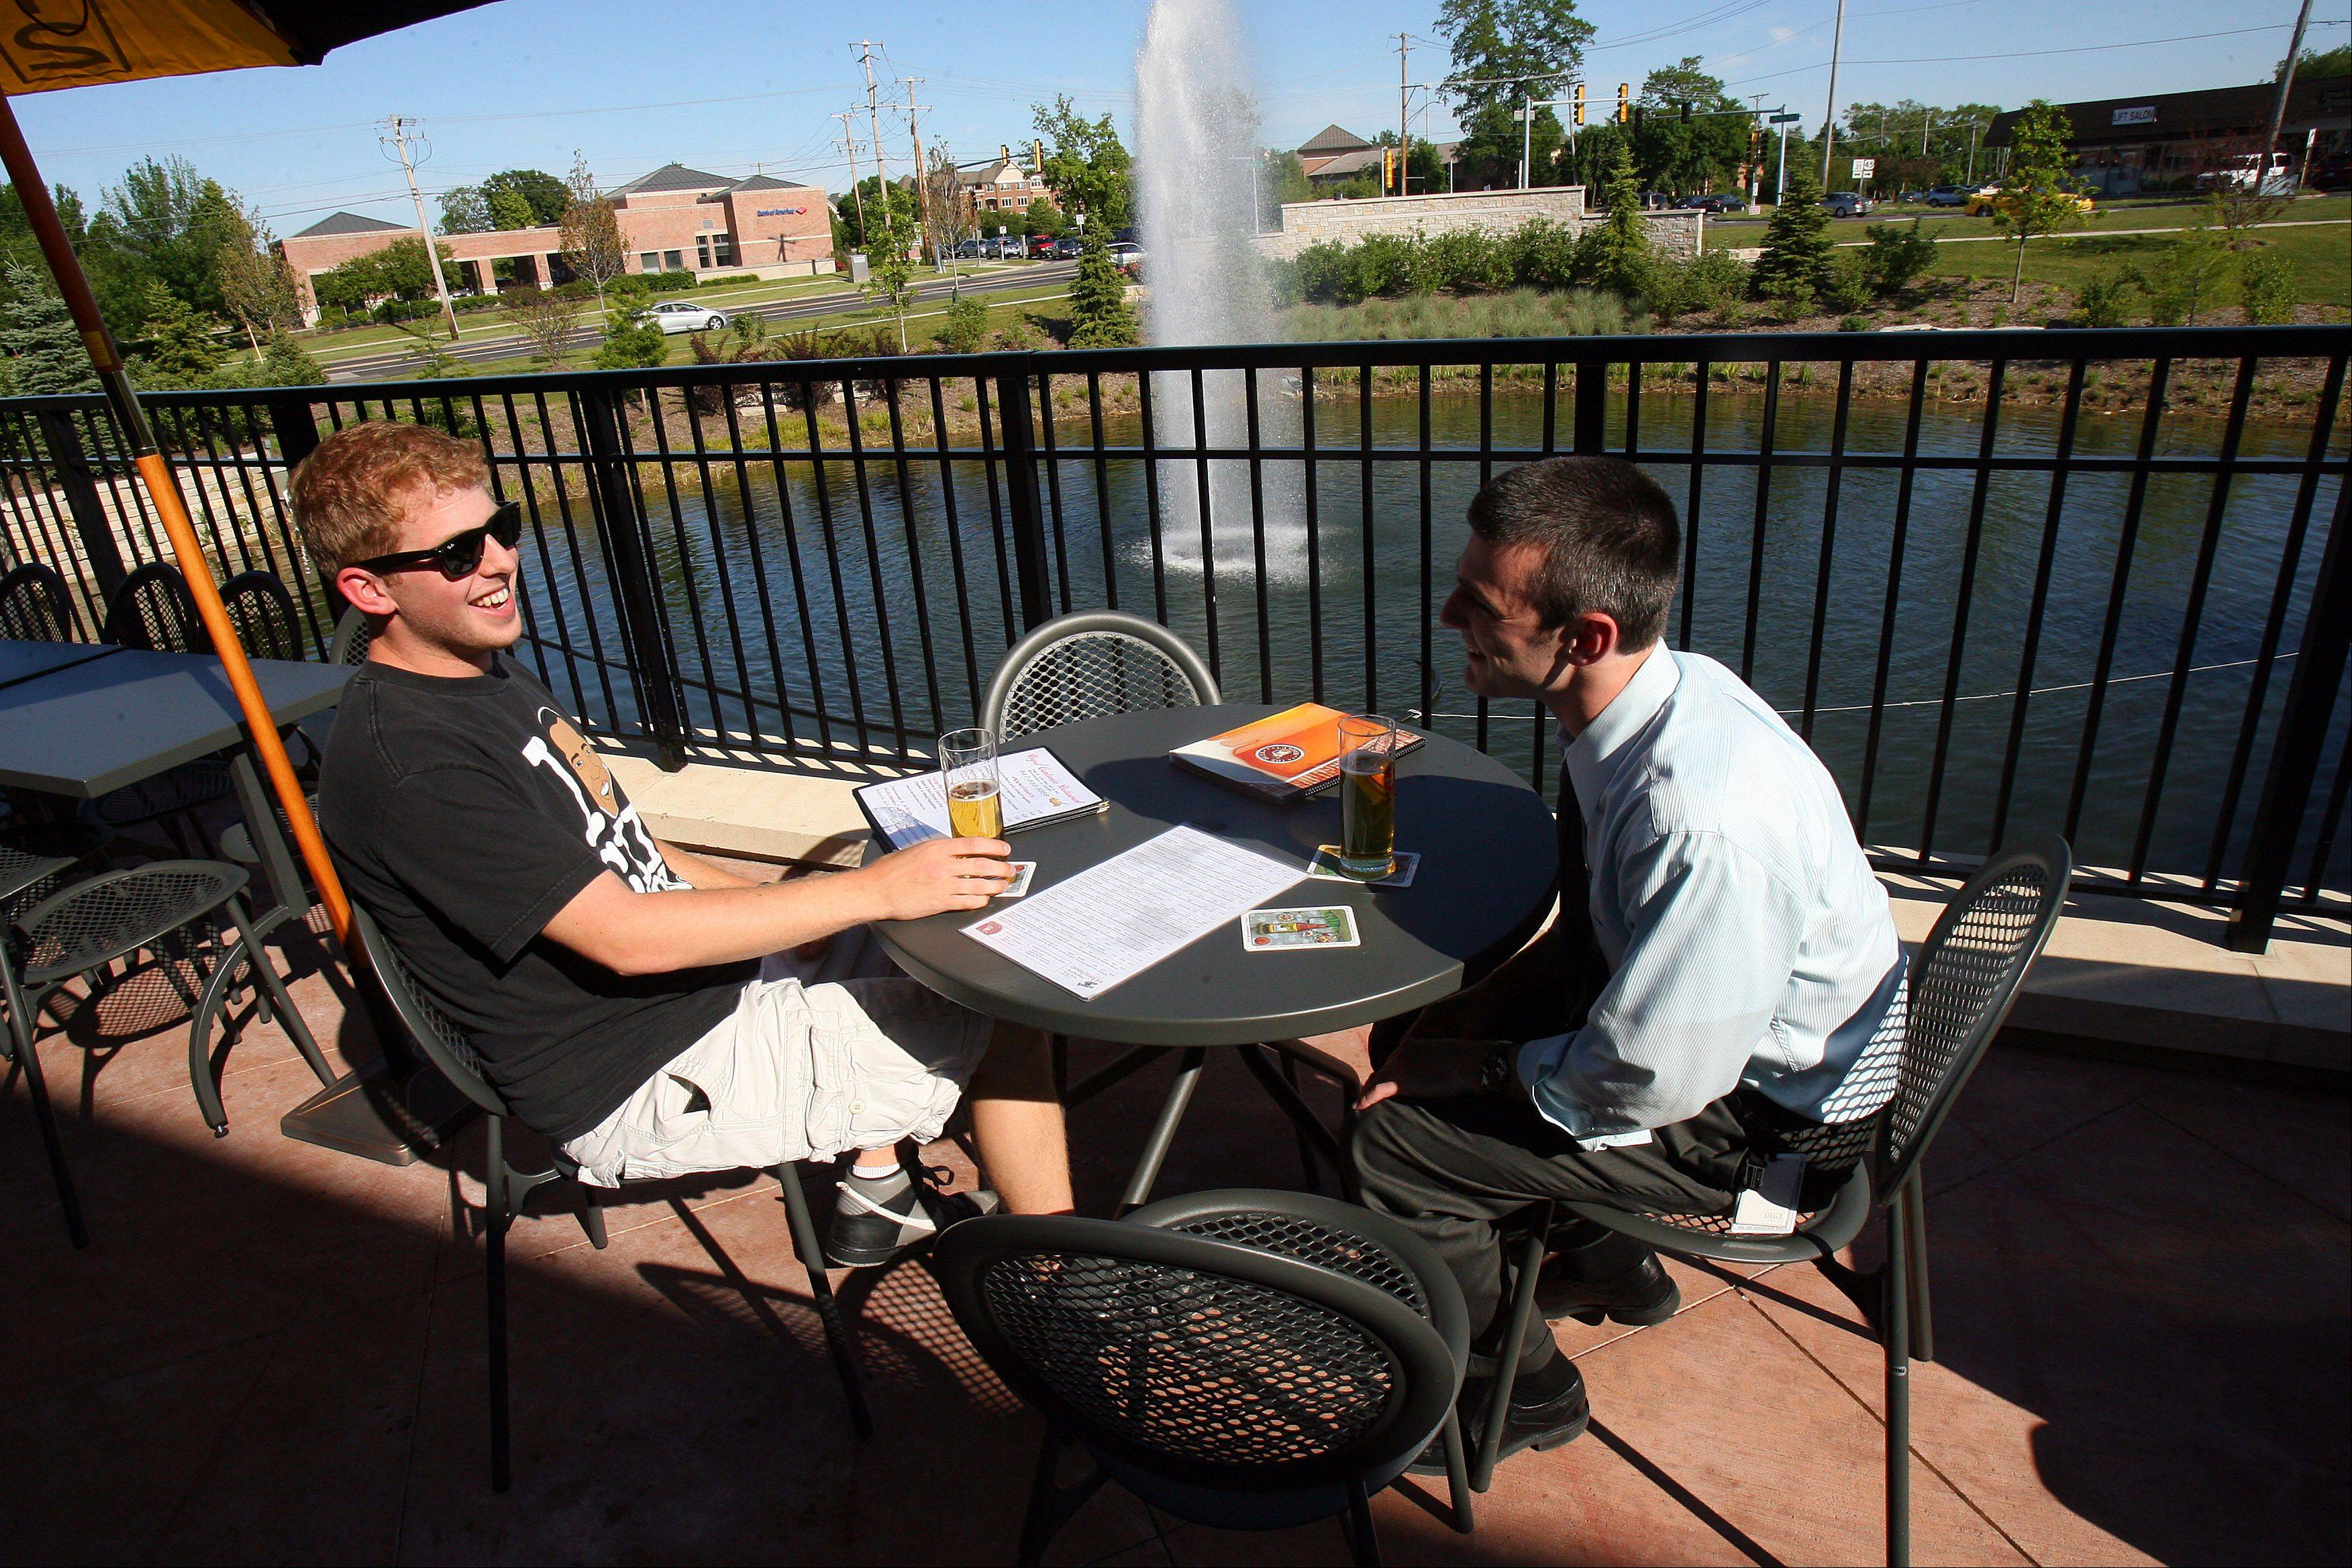 Ben Gleicher, left, and Mark Levitt, both of Buffalo Grove, enjoy a beer on the patio at the Beer Market in Vernon Hills.